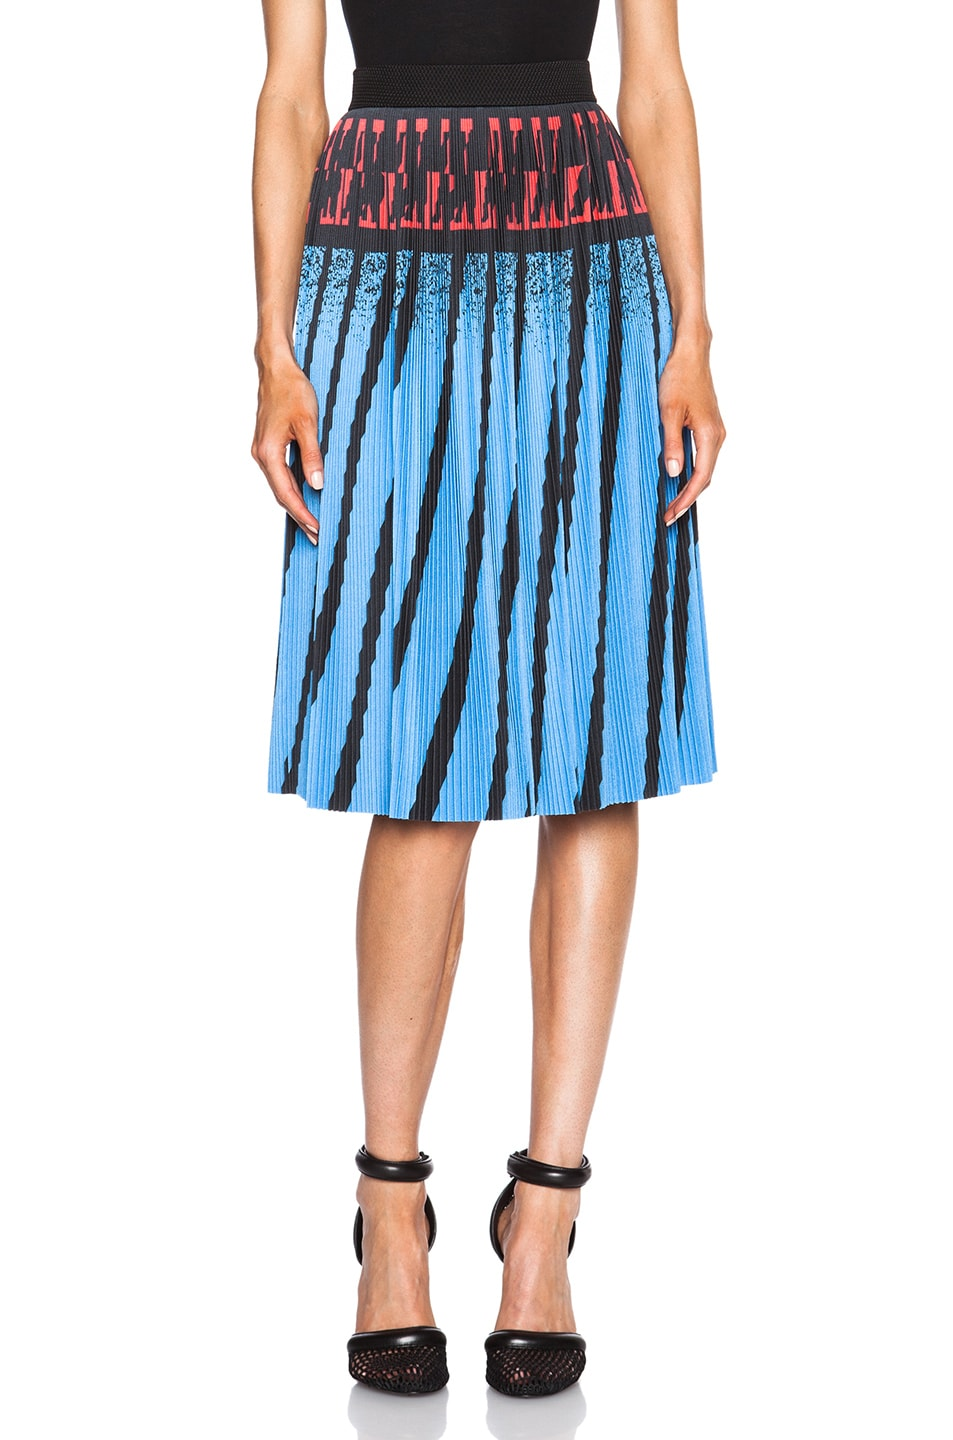 c04089475a Image 1 of Alexander Wang Accordion Pleated A-Line Skirt in Airtex Hazard